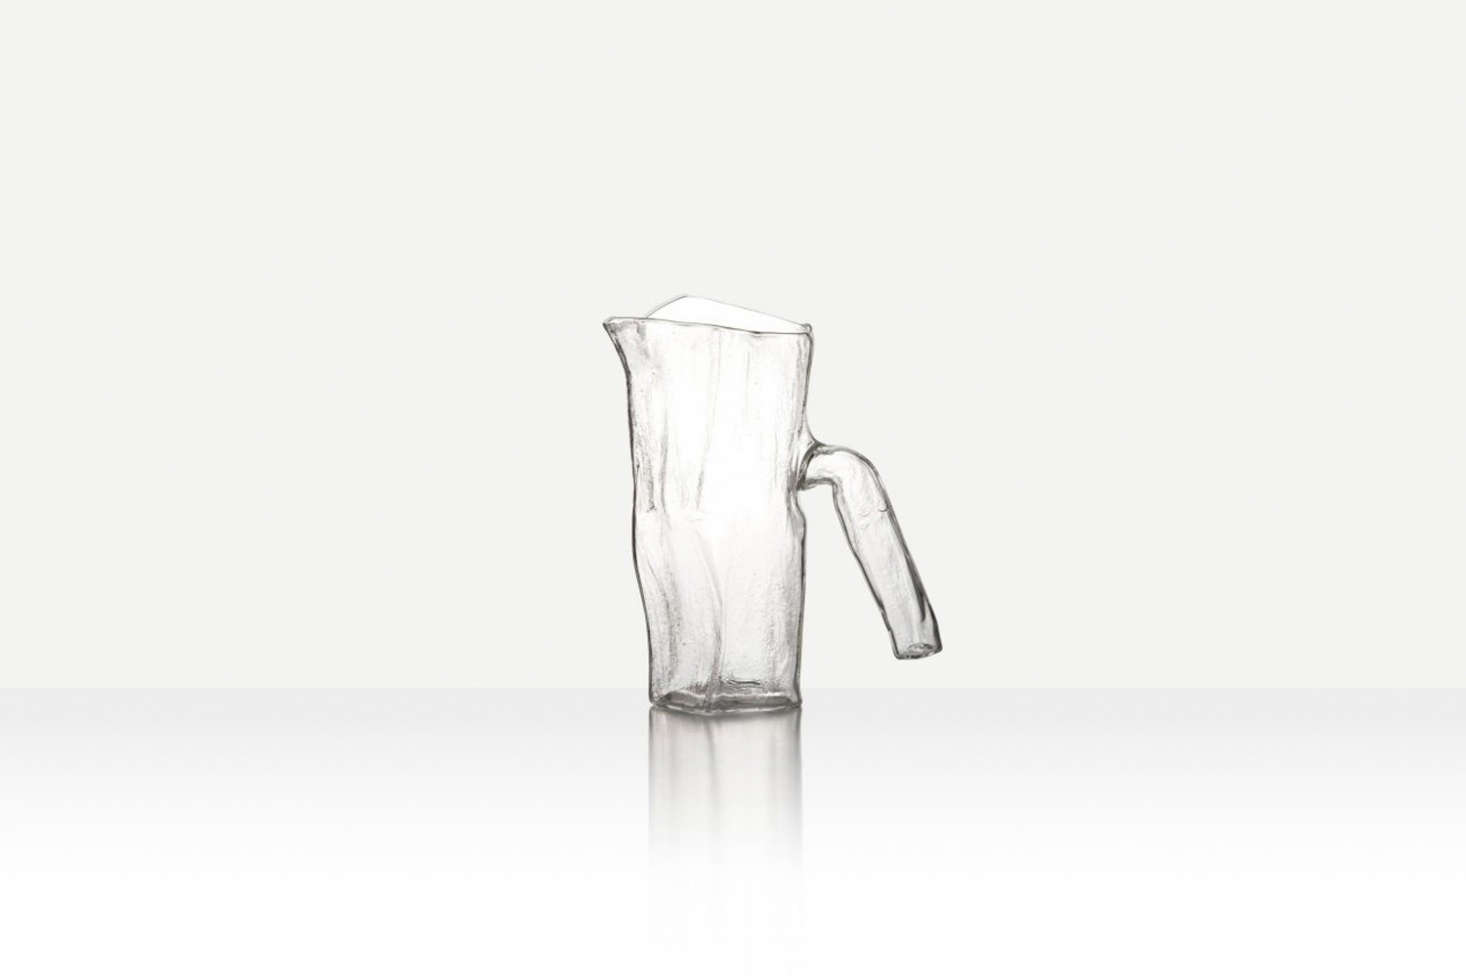 The Pressed Textural Jug from Jochen Holtz is free blown from borosilicate and has a textural pressed interior; it's available from the New Craftsman. For something similar, consider the HAY Glass Jug from MoMA Store.